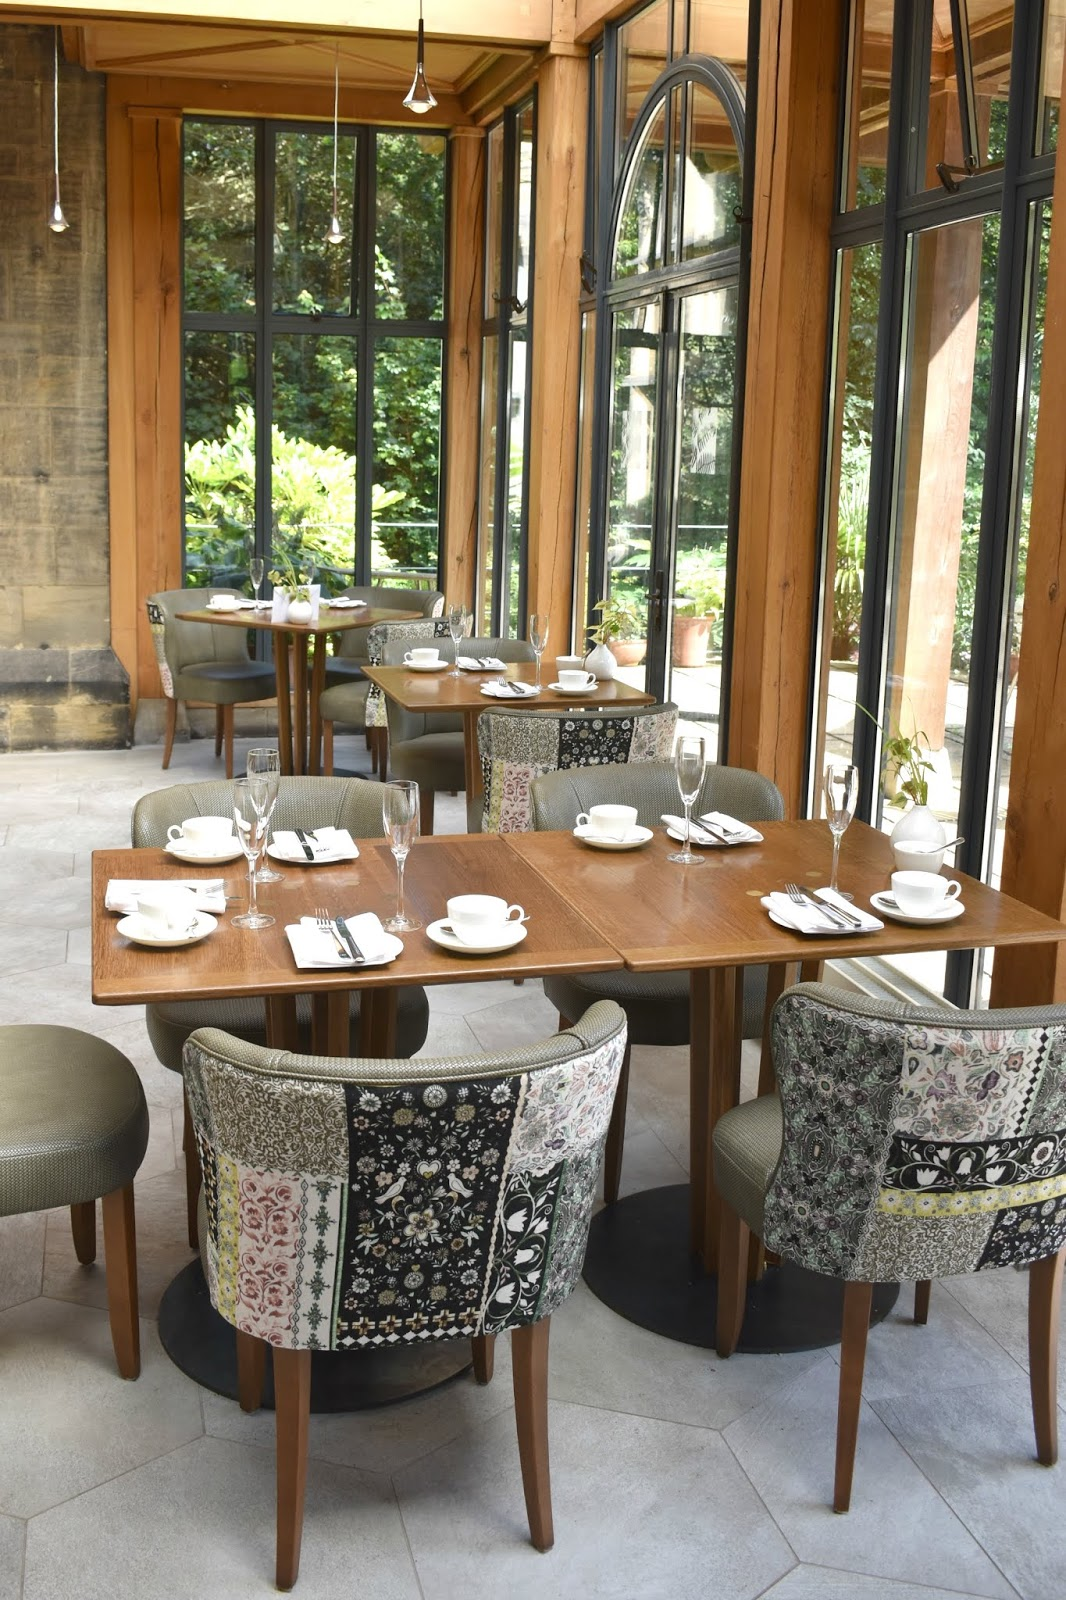 Refurbishment at Jesmond Dene House - Garden Room